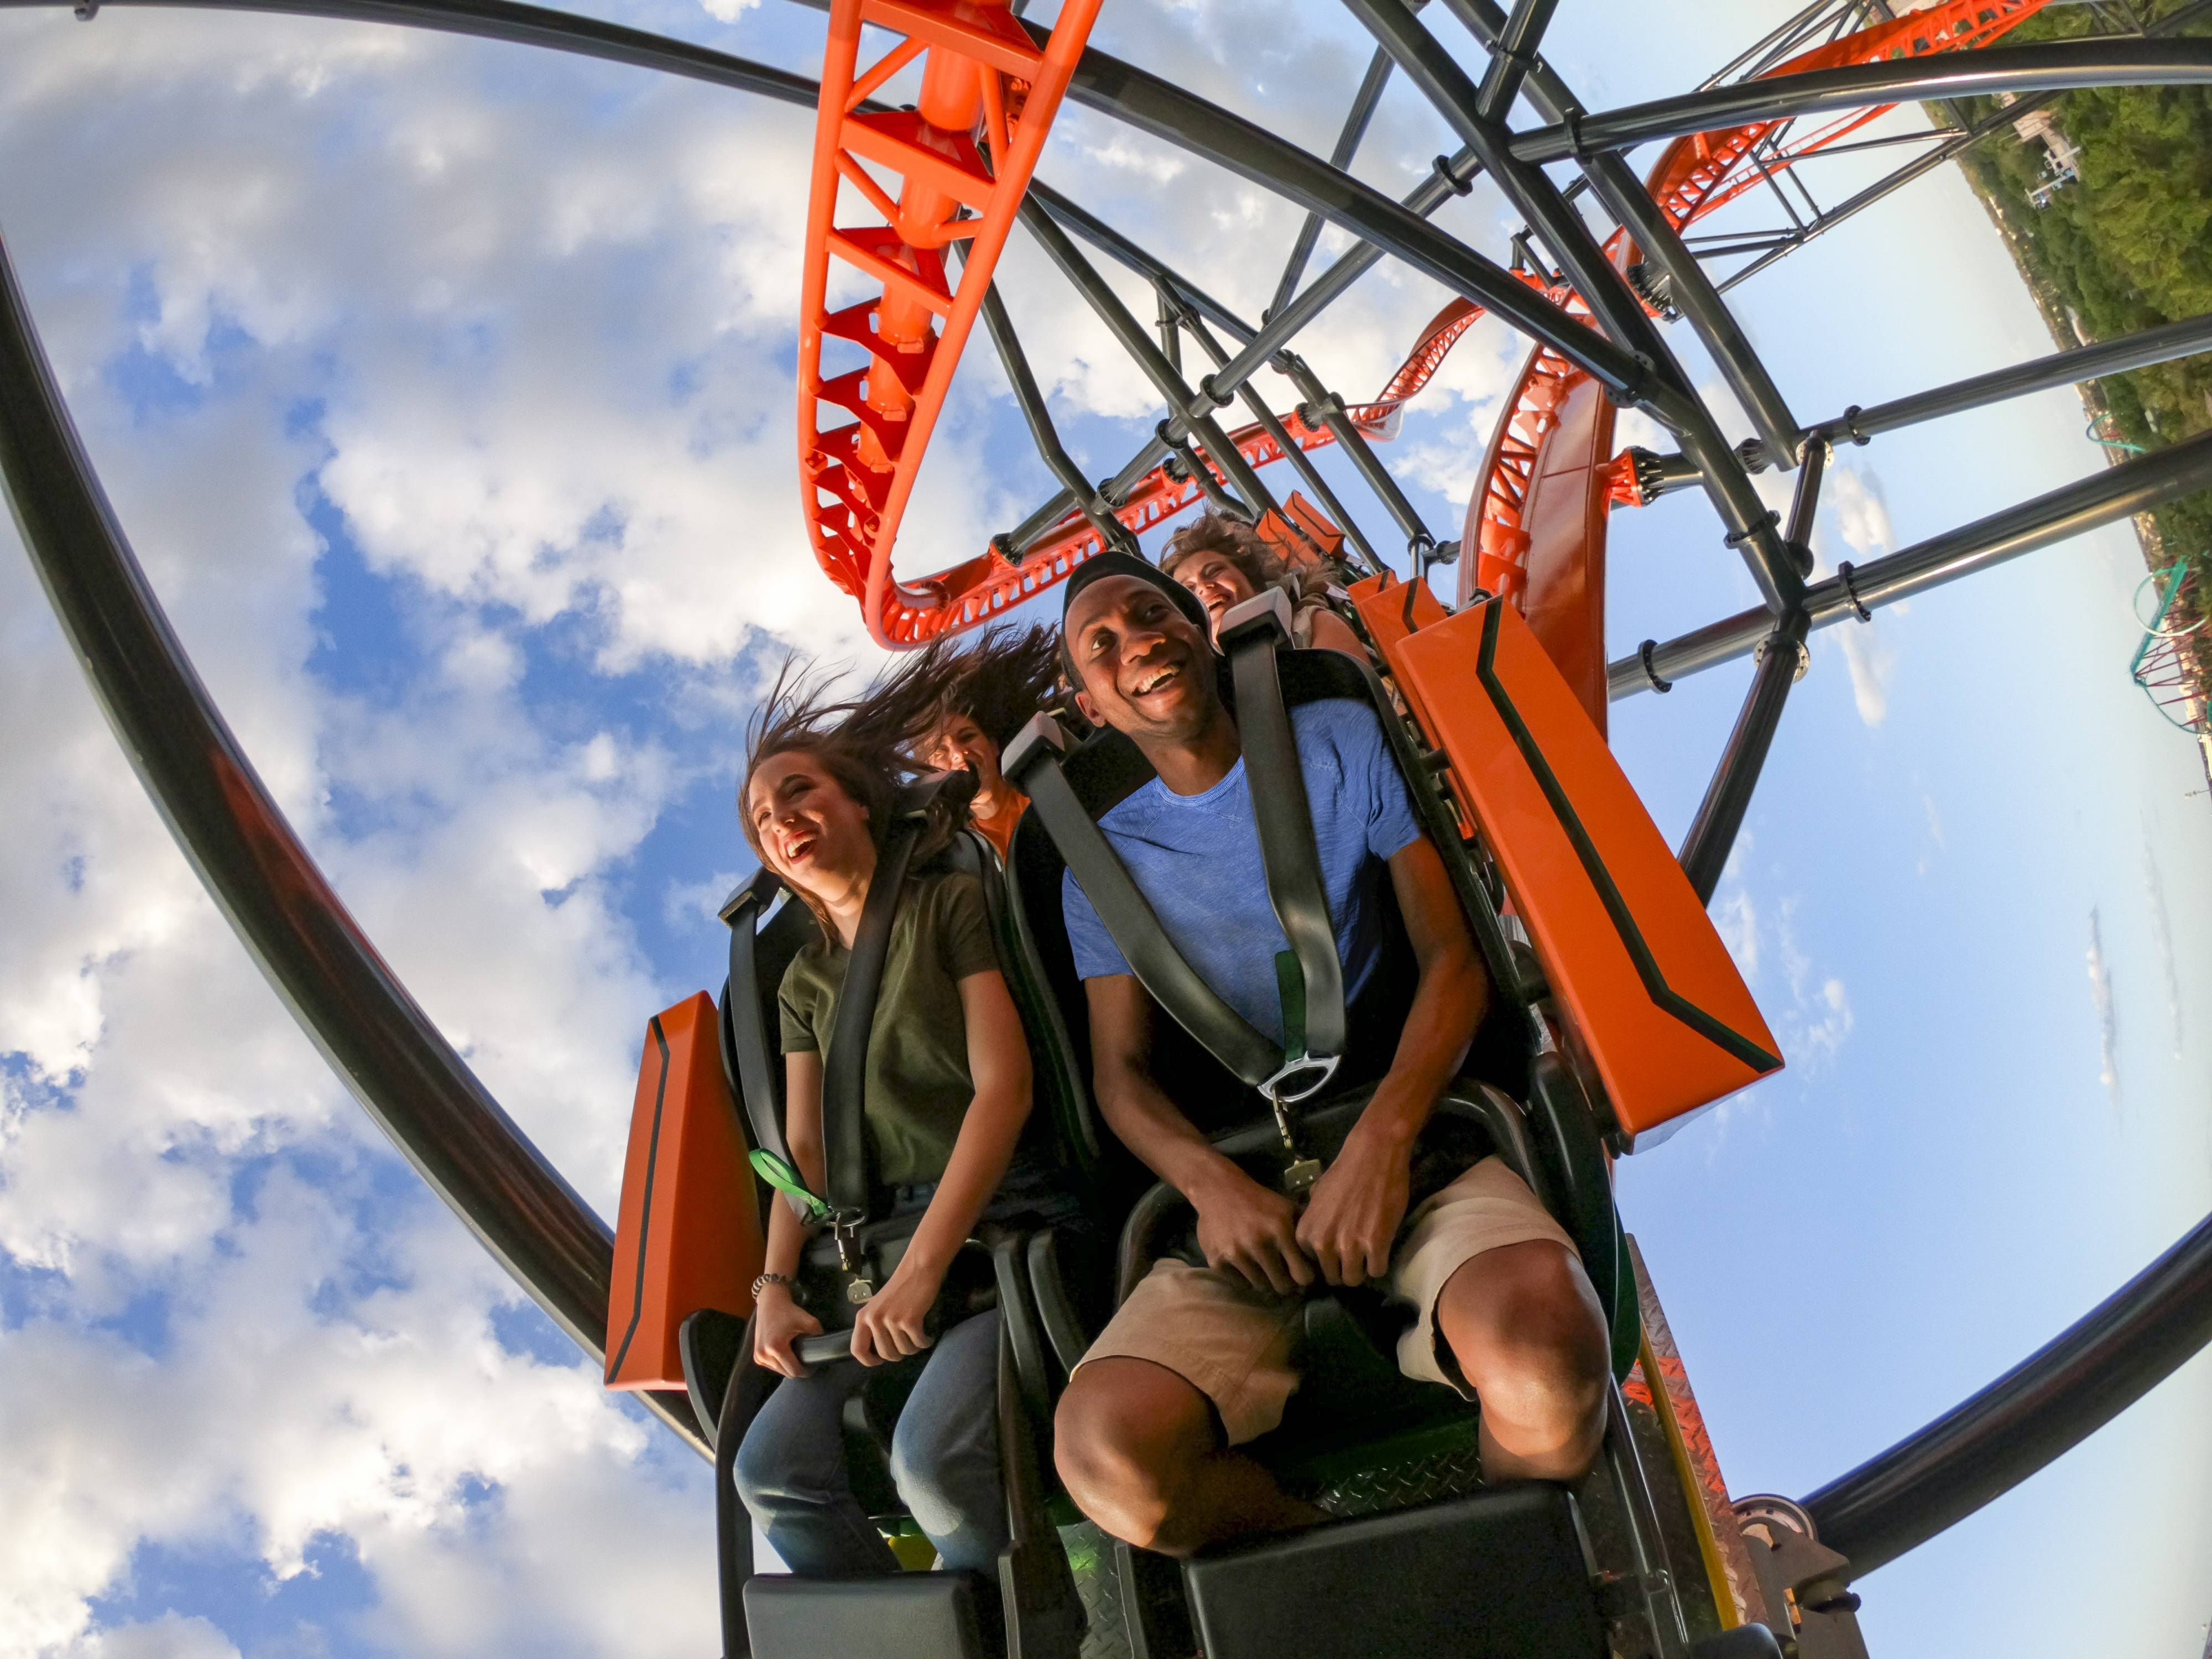 5654442658794a0301071ace40967309 - Music In The Parks Busch Gardens 2019